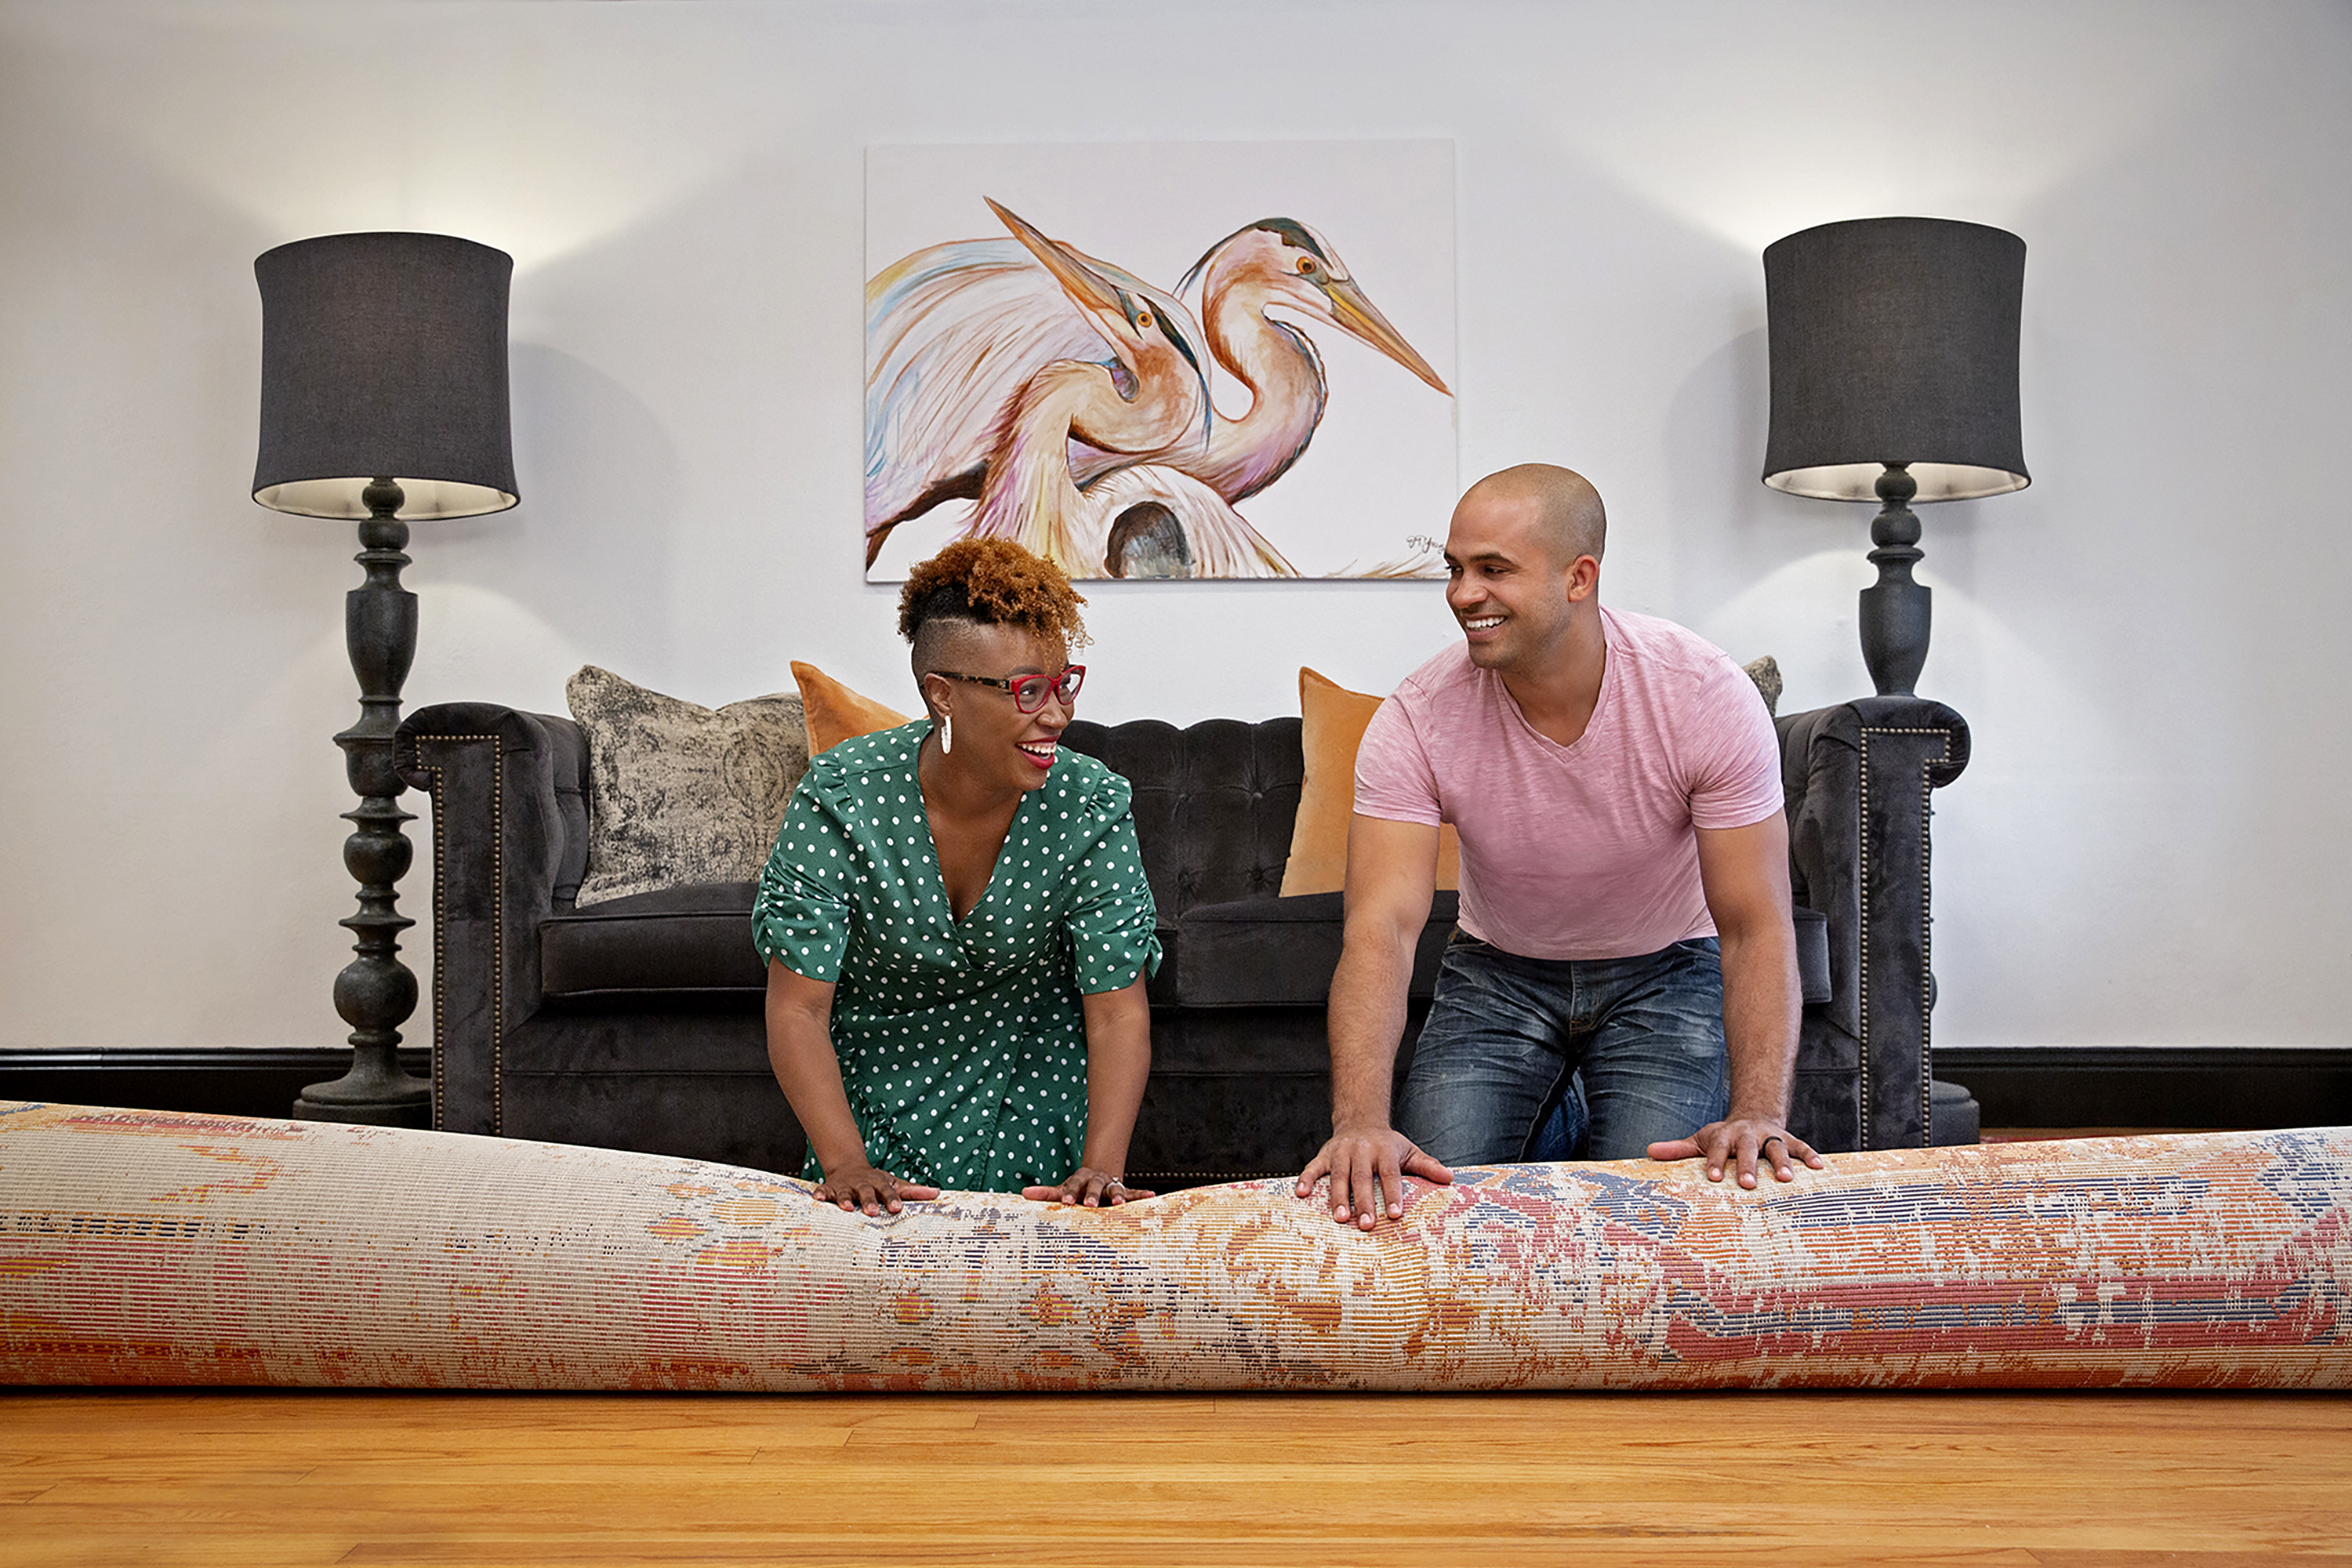 HGTV's 'Going for Sold' gives Houston flippers their moon shot